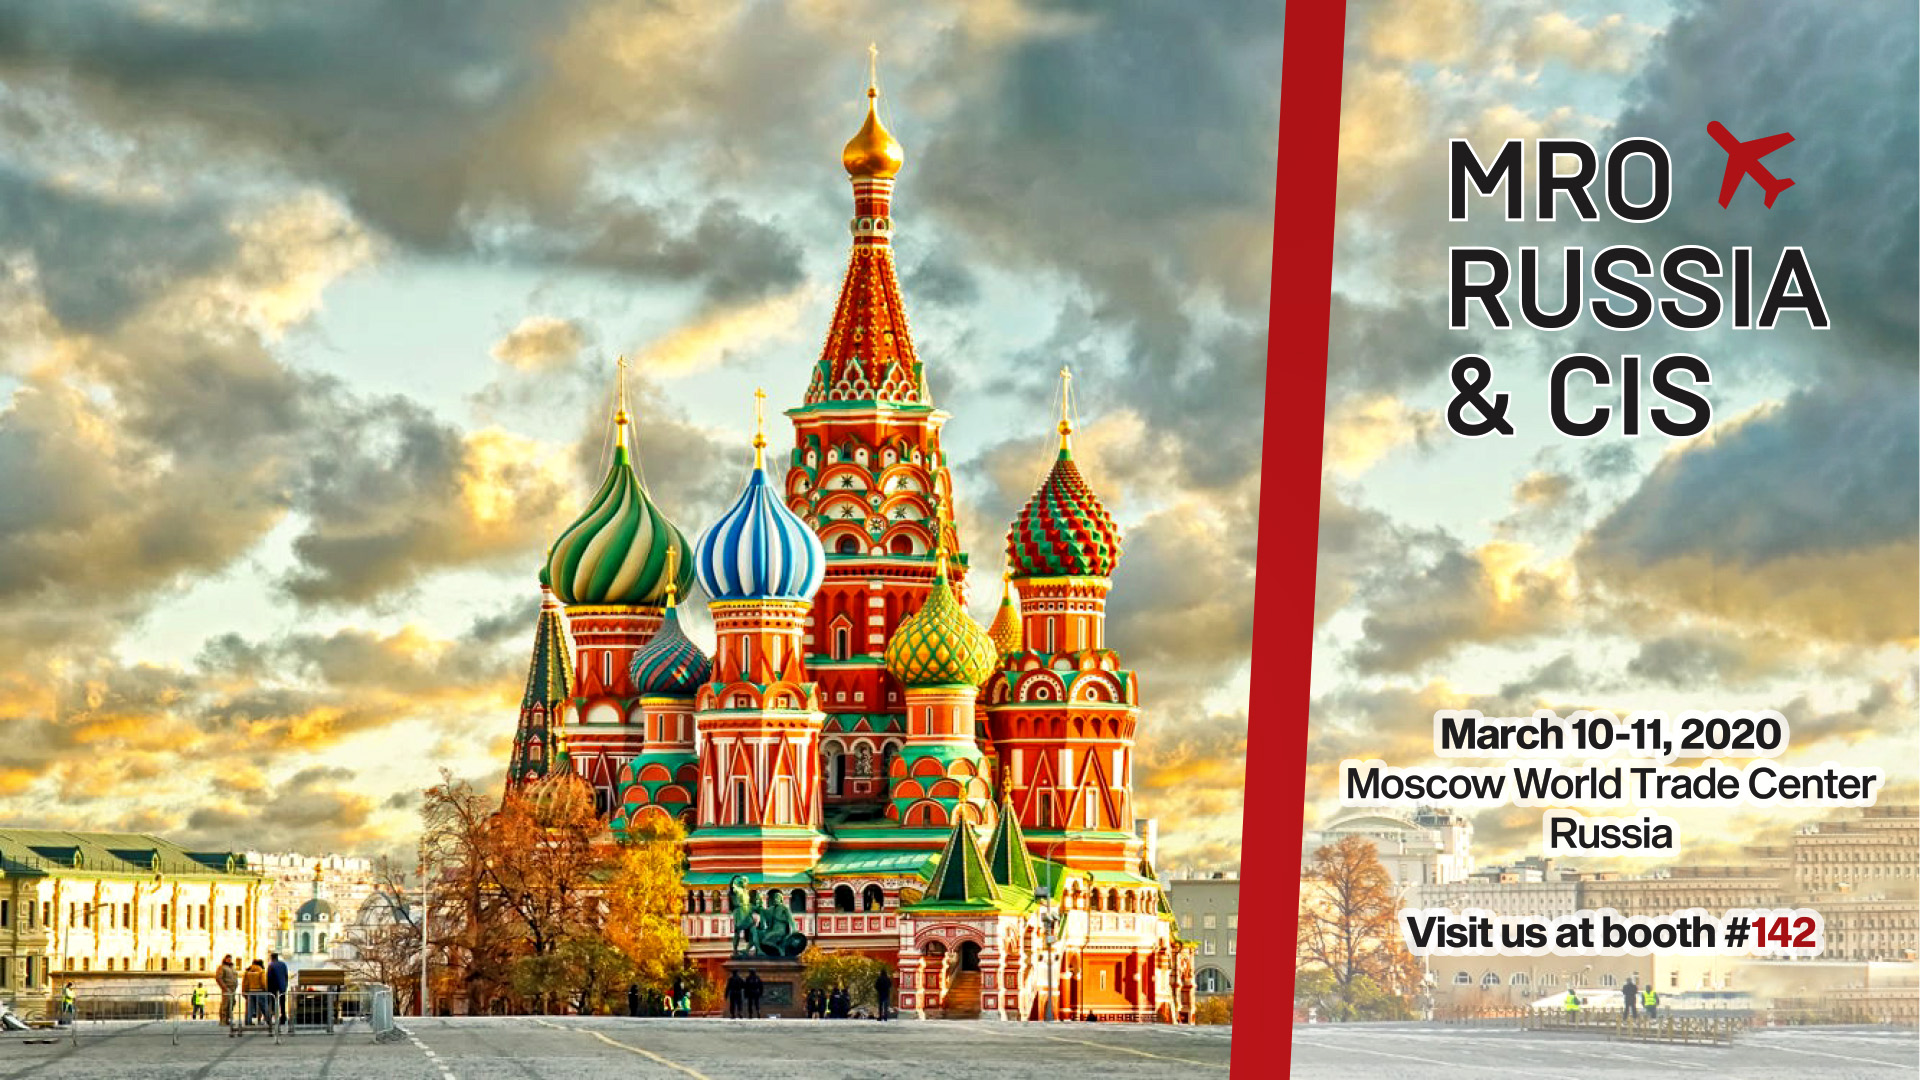 "<h2>Visit us at <span style=""color: rgb(196, 22, 28);""><strong>MRO Russia &amp; CIS 2020</strong></span><strong>&nbsp;</strong>in Moscow</h2>"